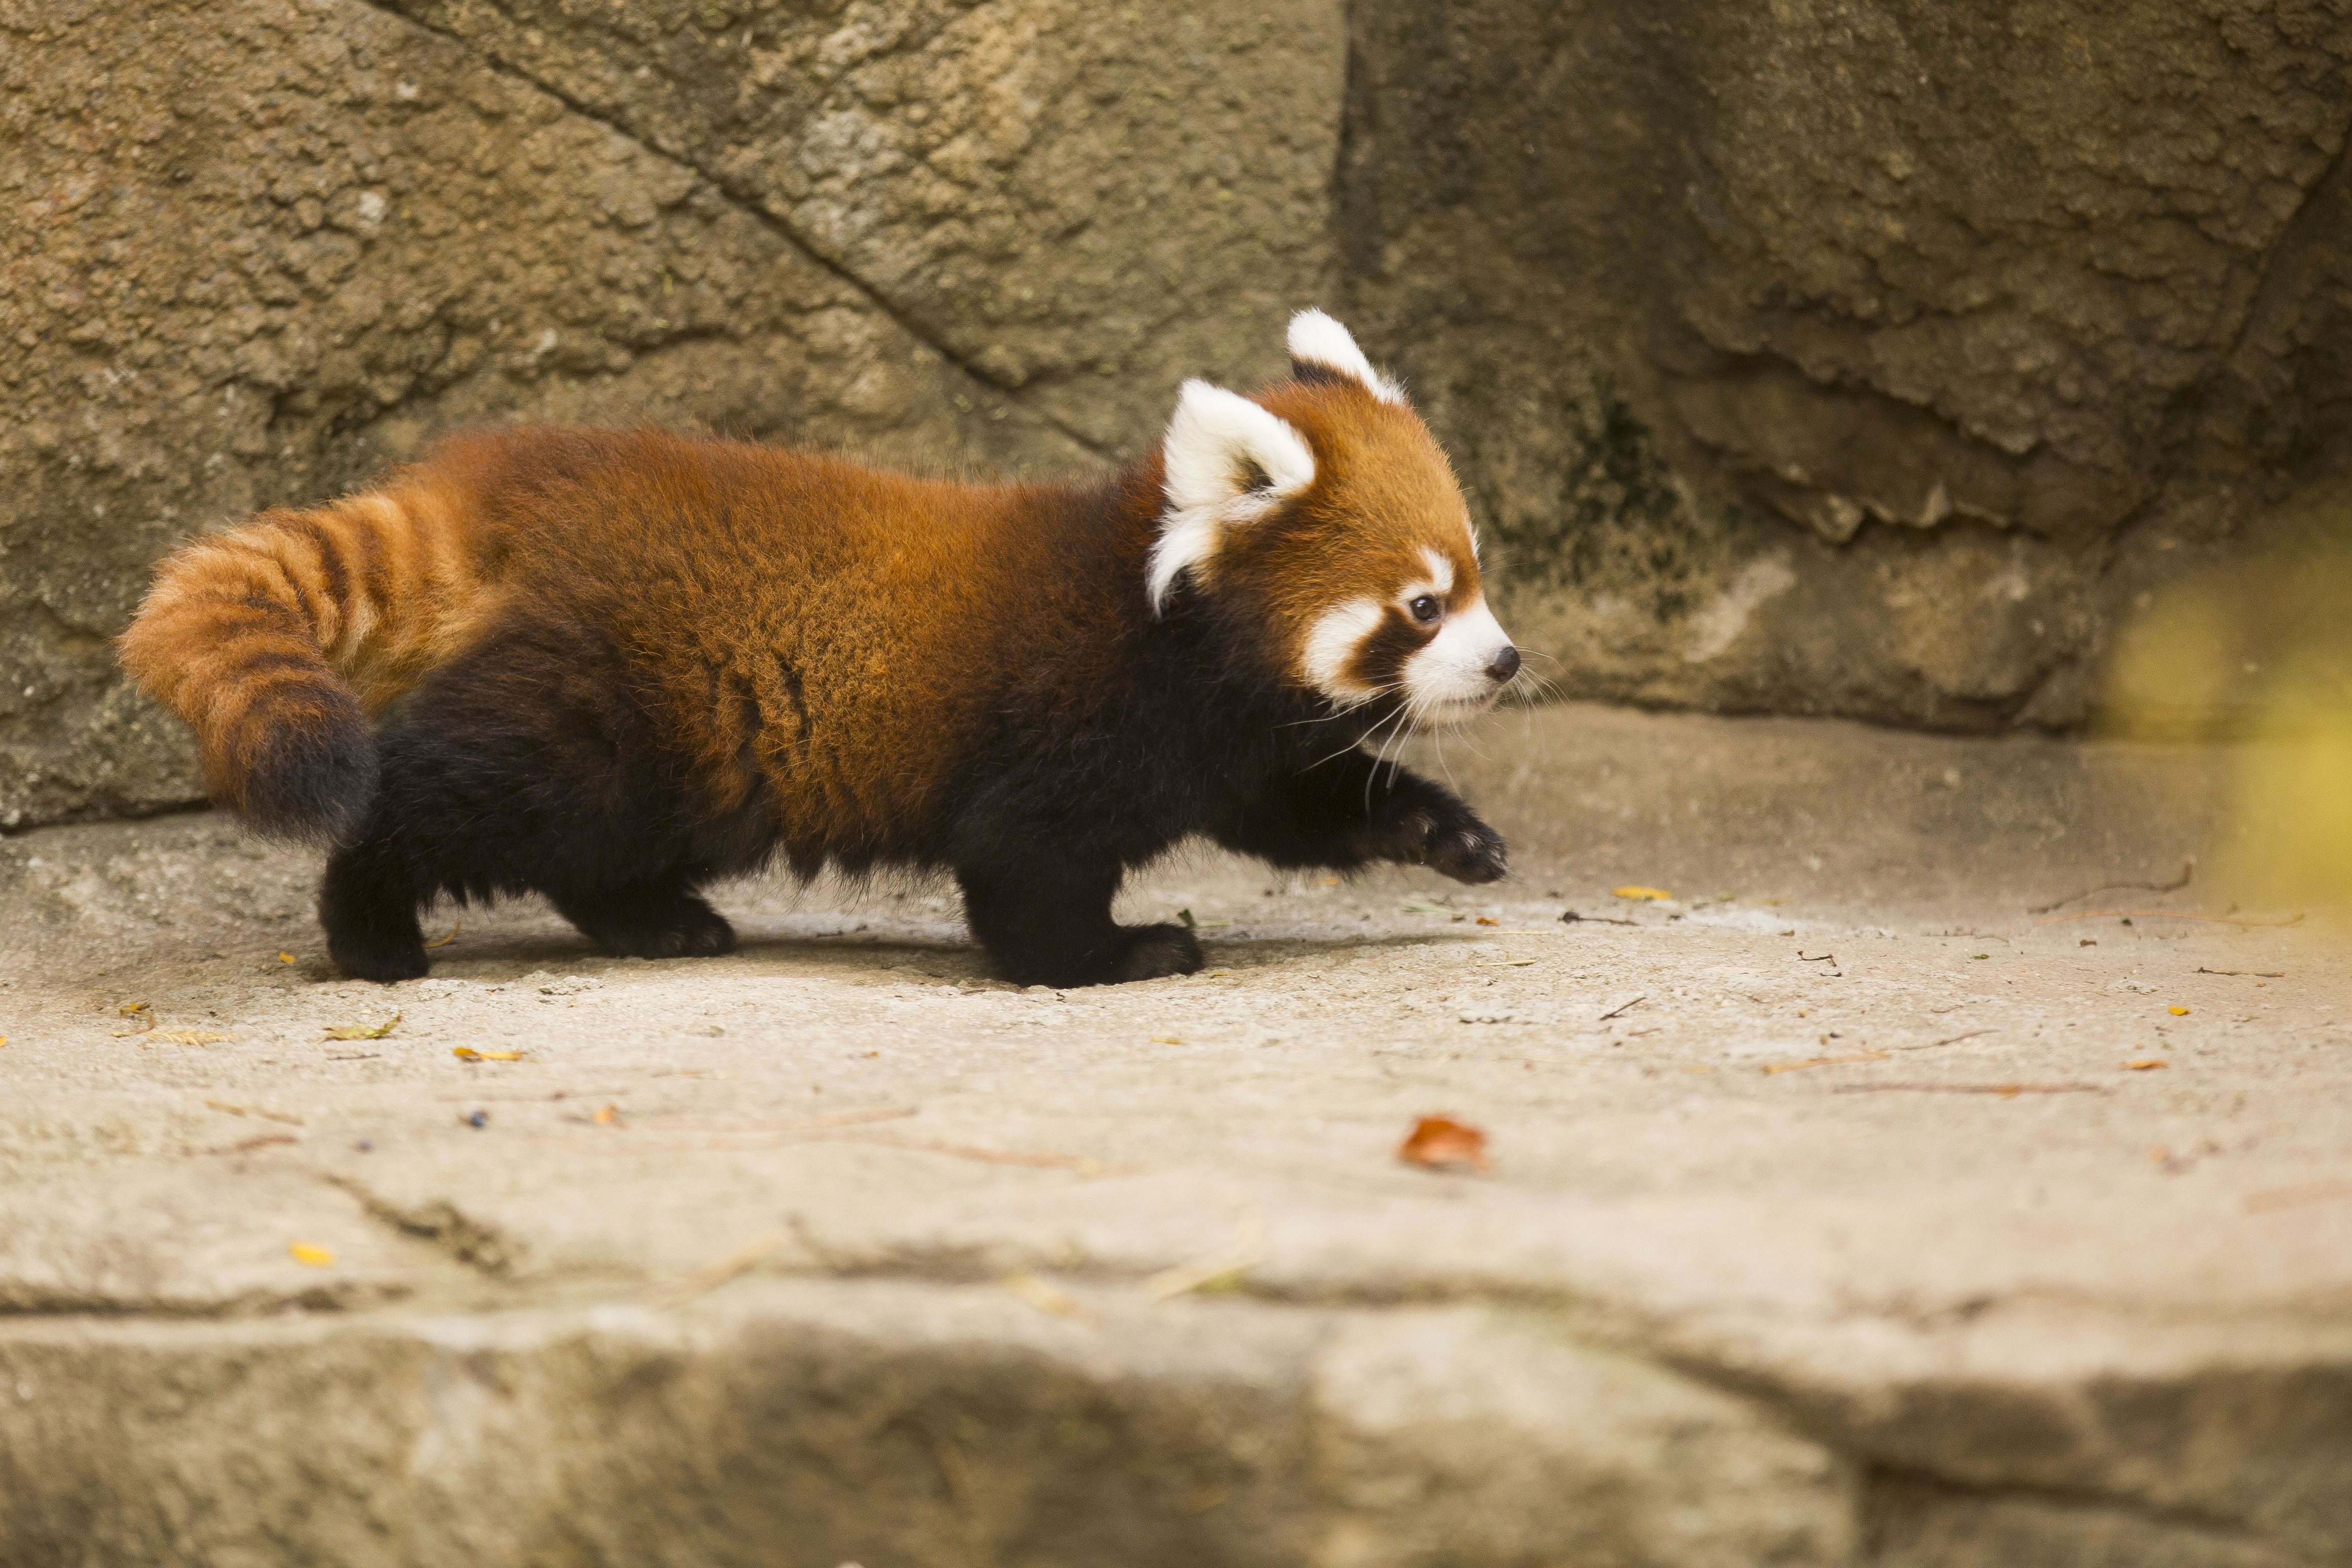 Red Panda From The Chicago Zoo Computer Wallpapers Desktop Backgrounds 4635x3090 Id 681937 Red Panda Cute Red Panda Cute Animals